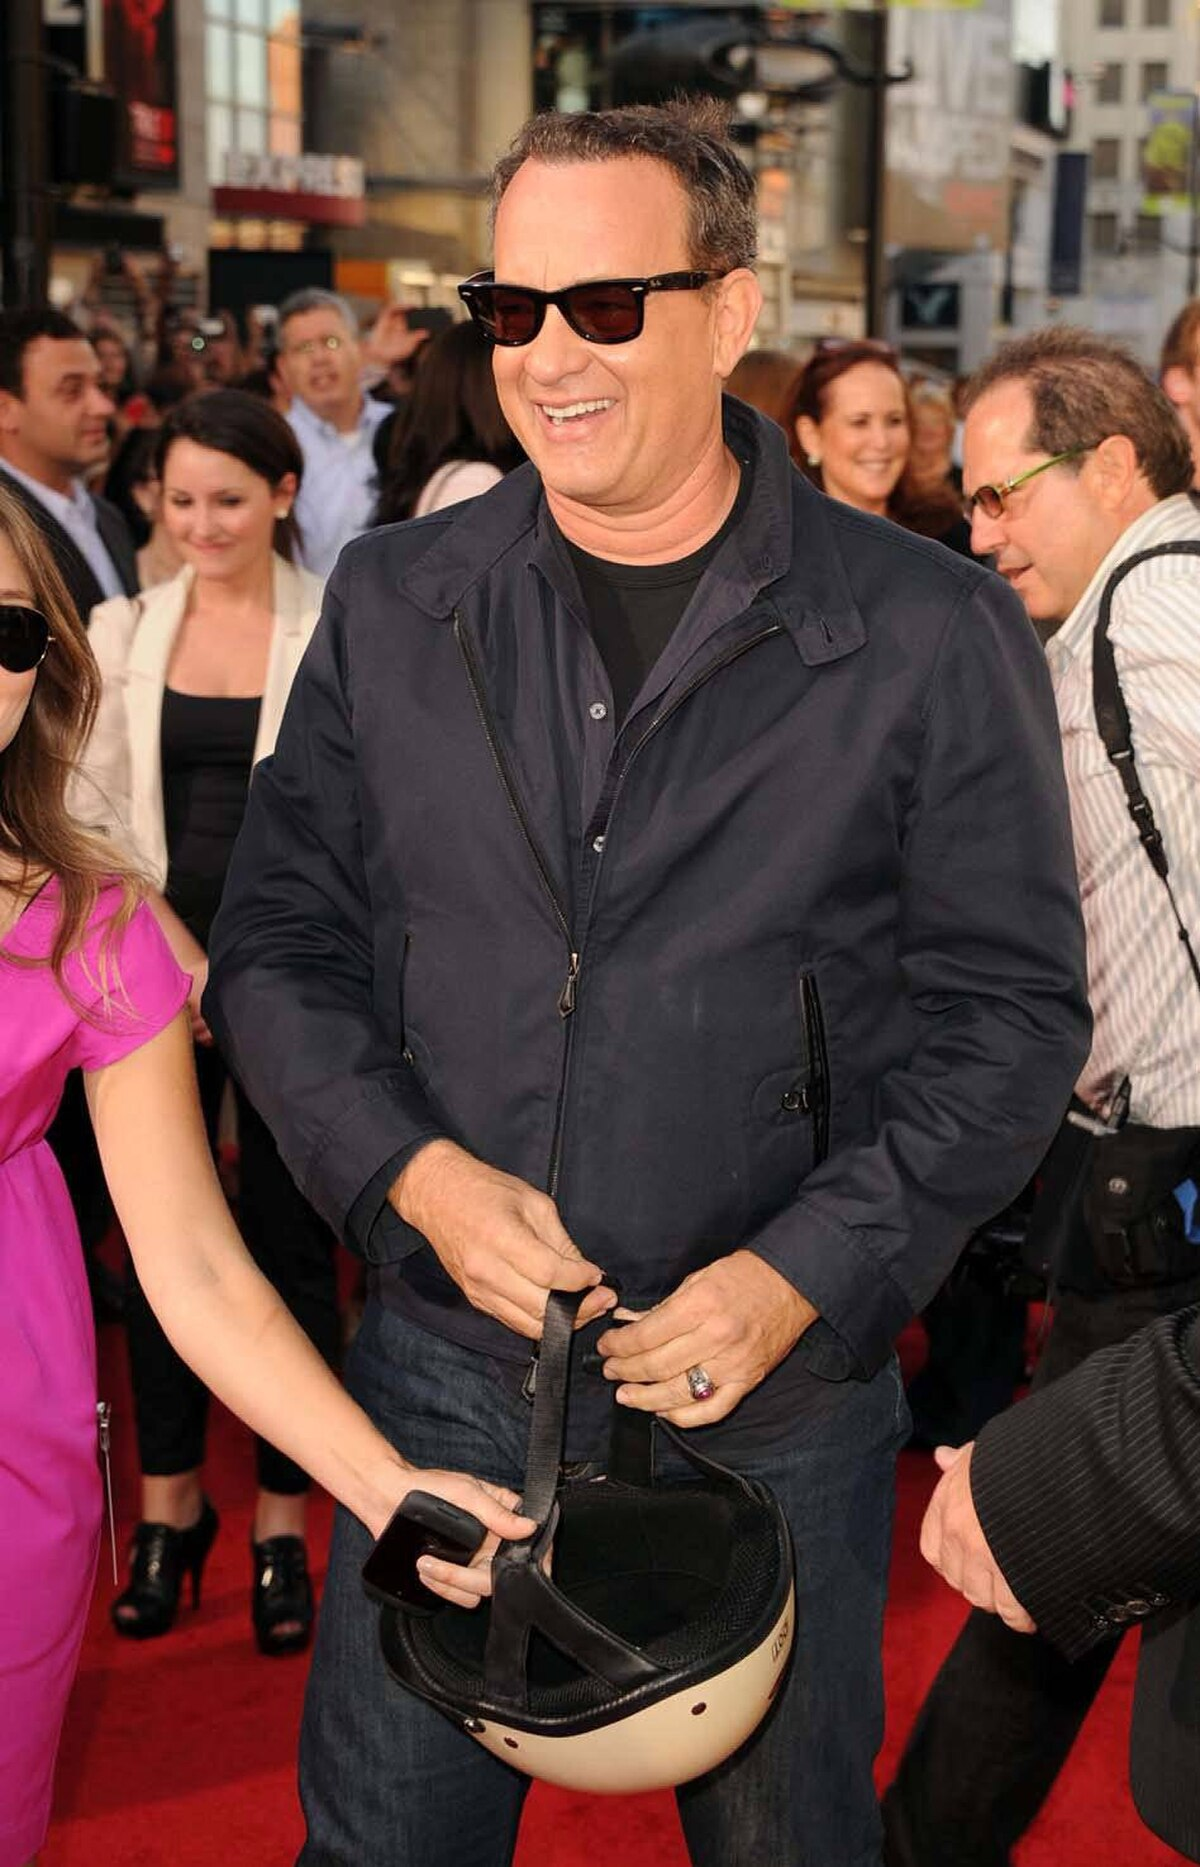 """Director/writer/producer/actor Tom Hanks arrives at the Premiere of Universal Pictures' """"Larry Crowne"""" at Grauman's Chinese Theatre on June 27, 2011 in Hollywood, California."""